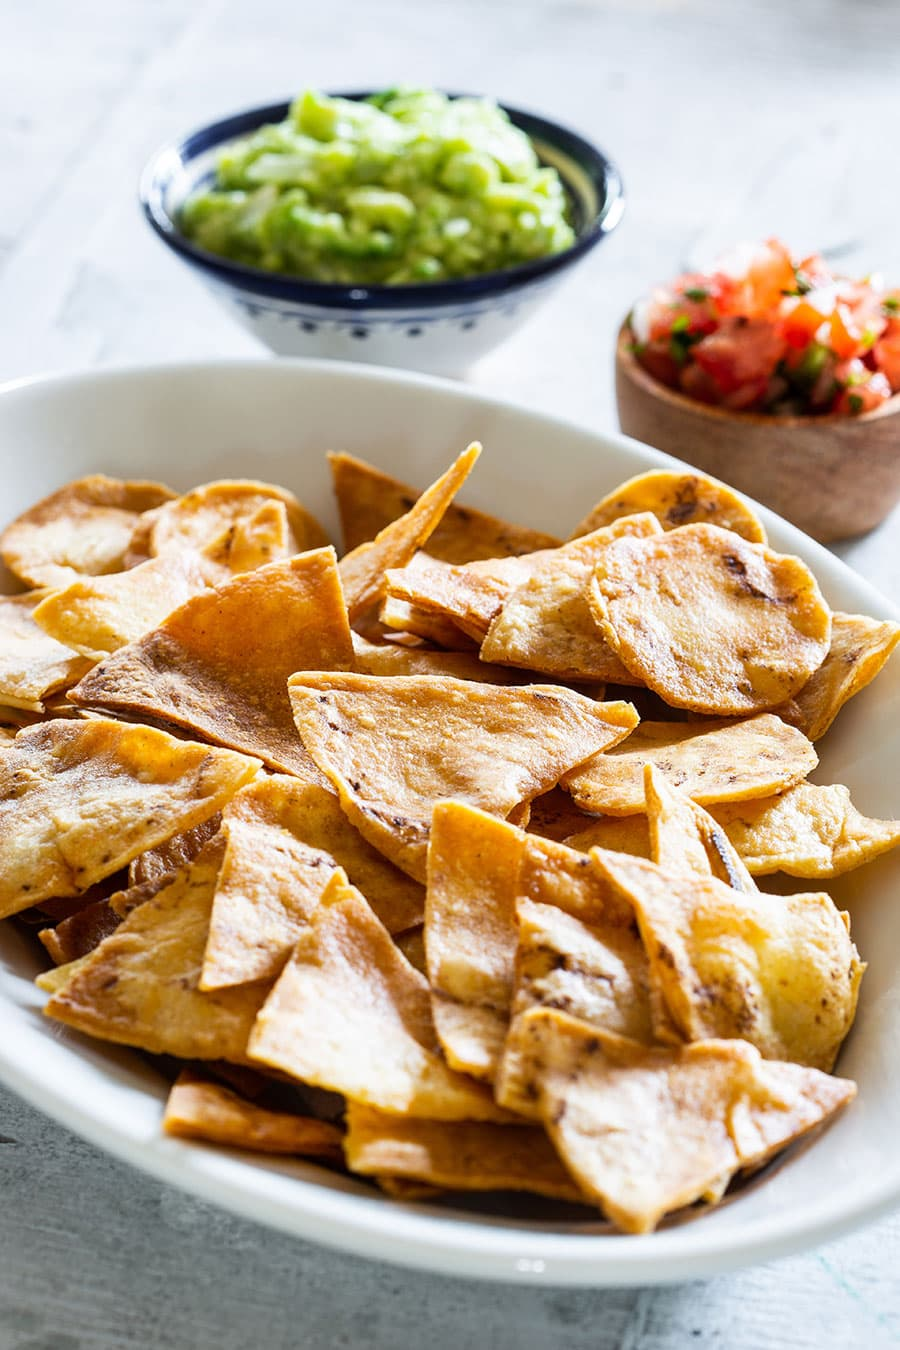 Crispy and golden tortilla chips (totopos).